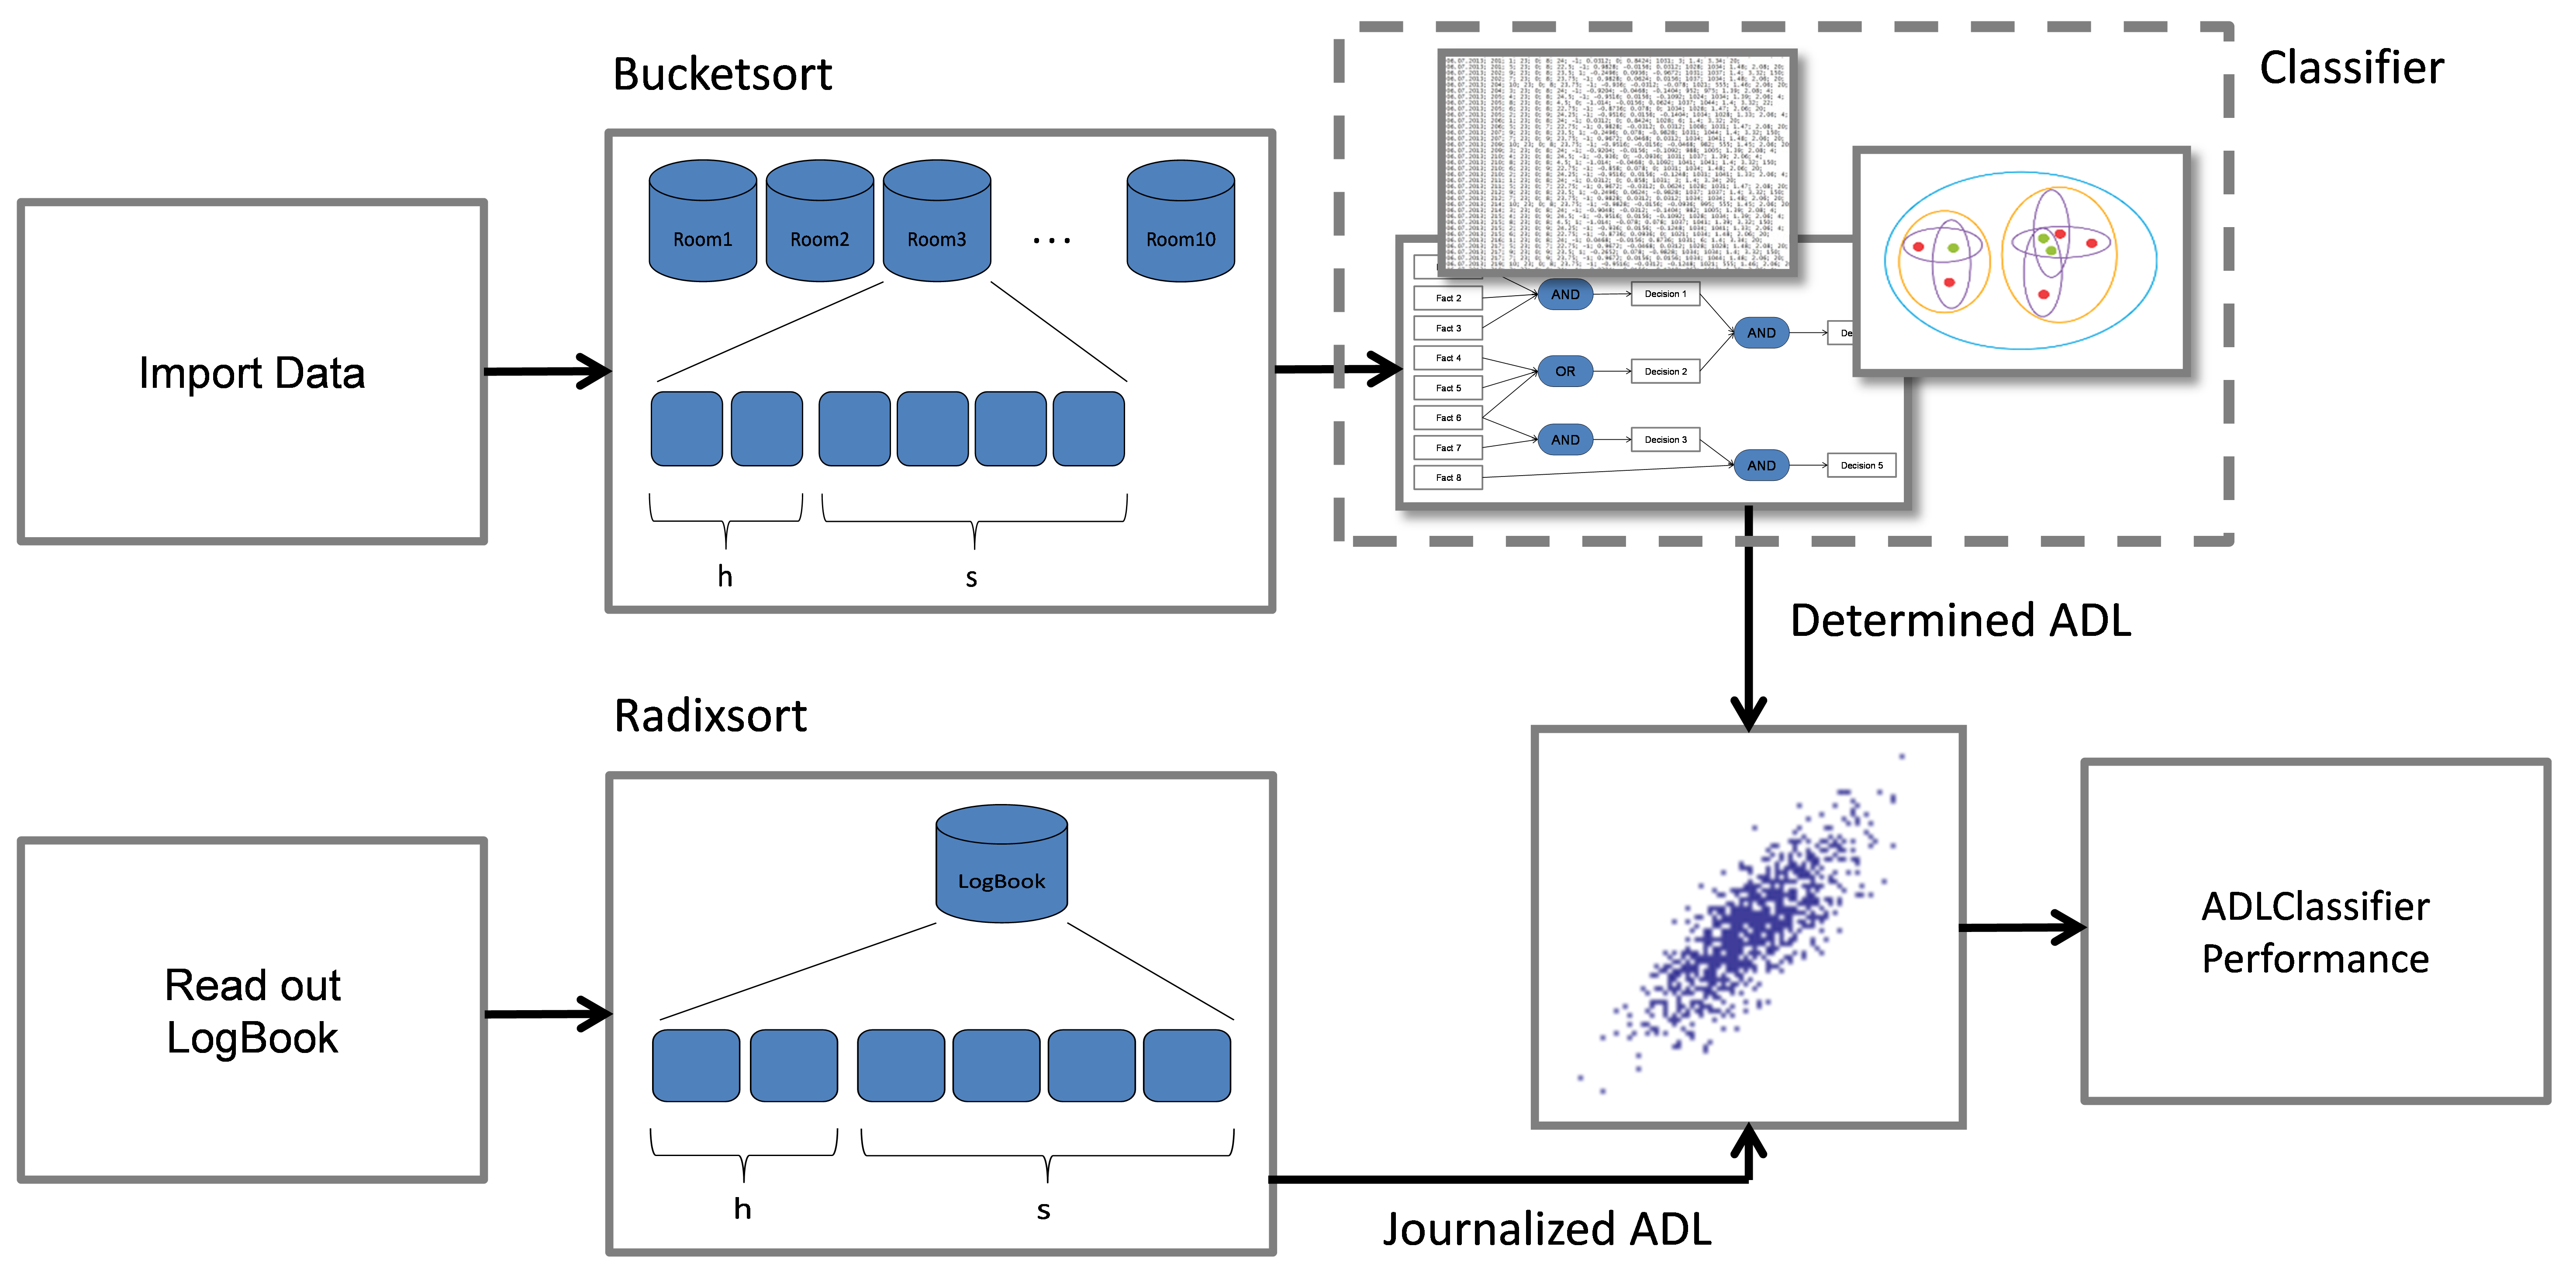 Jmir A Web Based Non Intrusive Ambient System To Measure And Puter Diagram In Addition On Hardware Block Of Toilet Figure 6 Correlation The Adl Classifier Output With Protocols